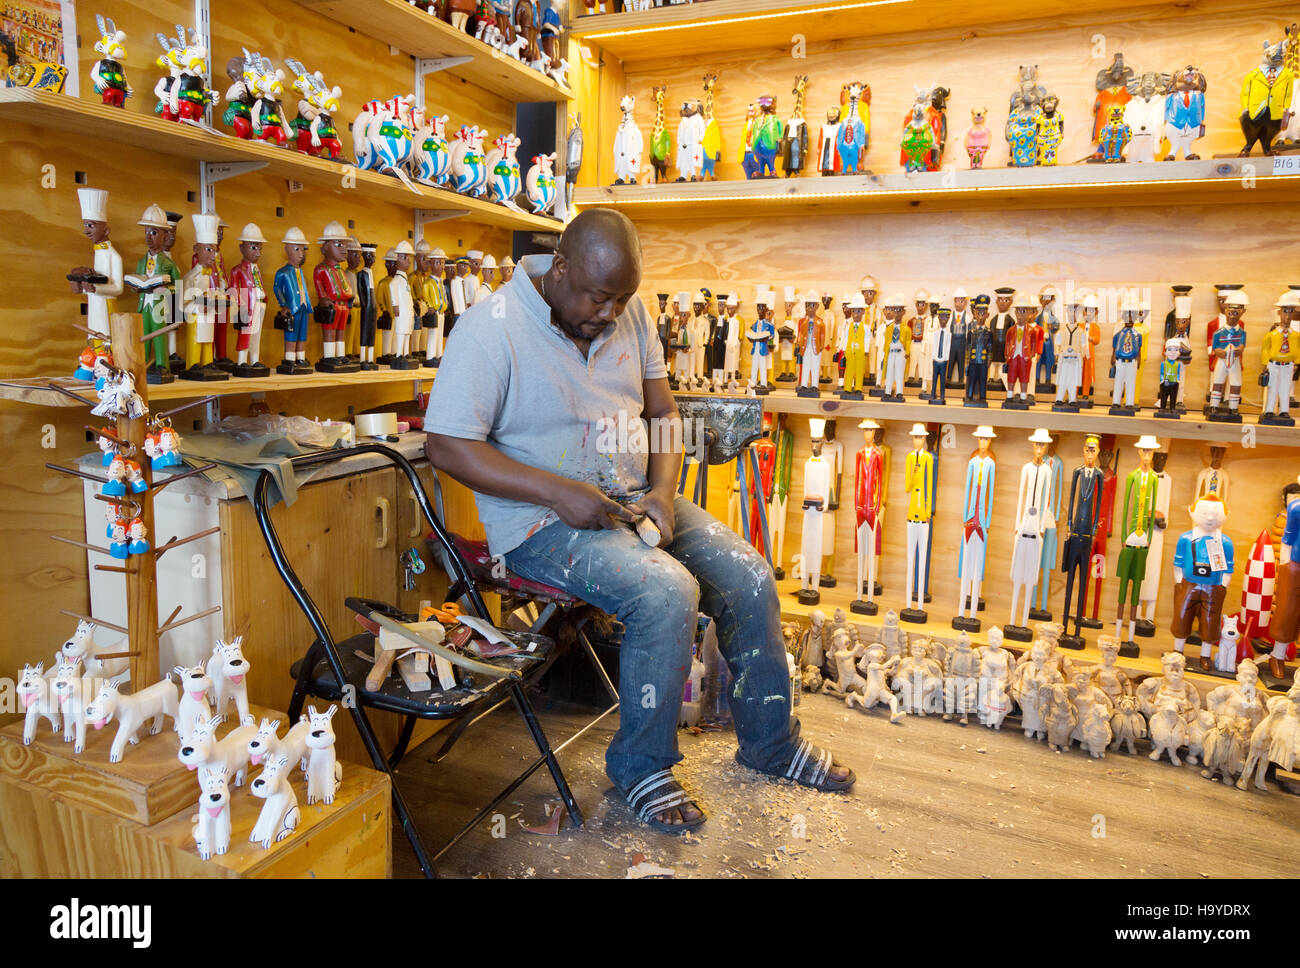 A craftsman at work carving wooden toys in a craft shop 13931e0d870e